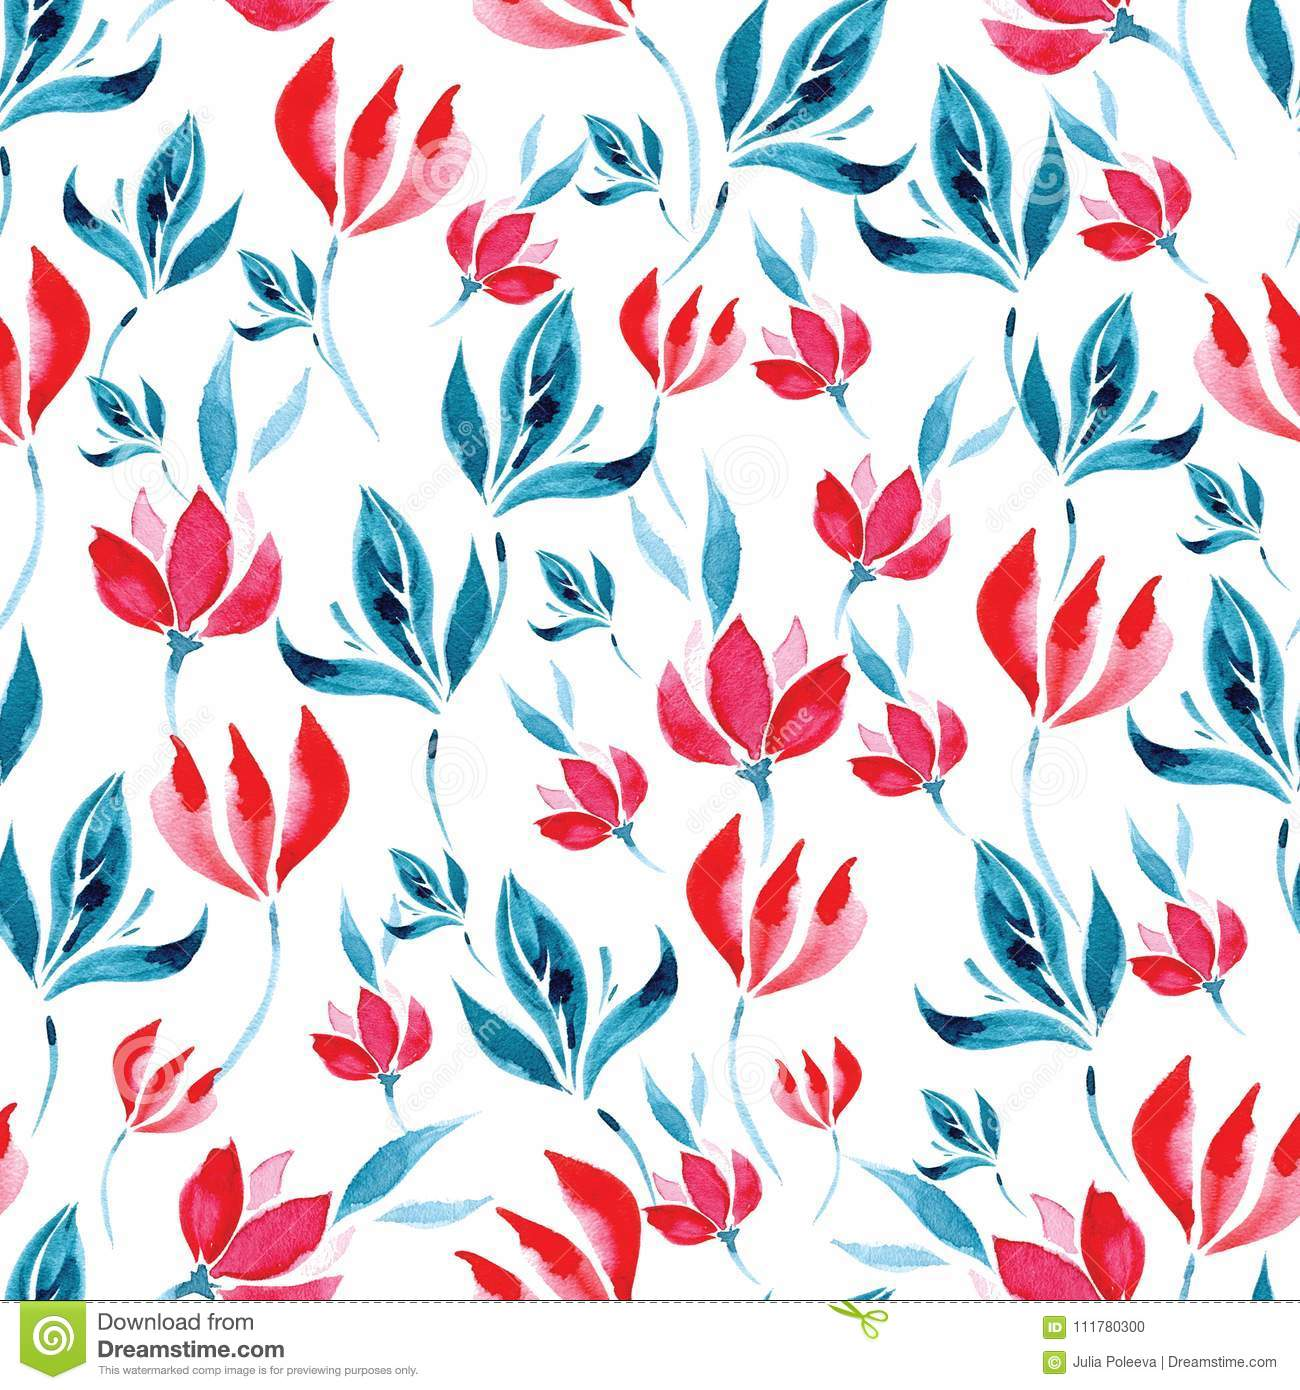 Seamless watercolor pattern of red flowers and turquoise leaves on a white background.